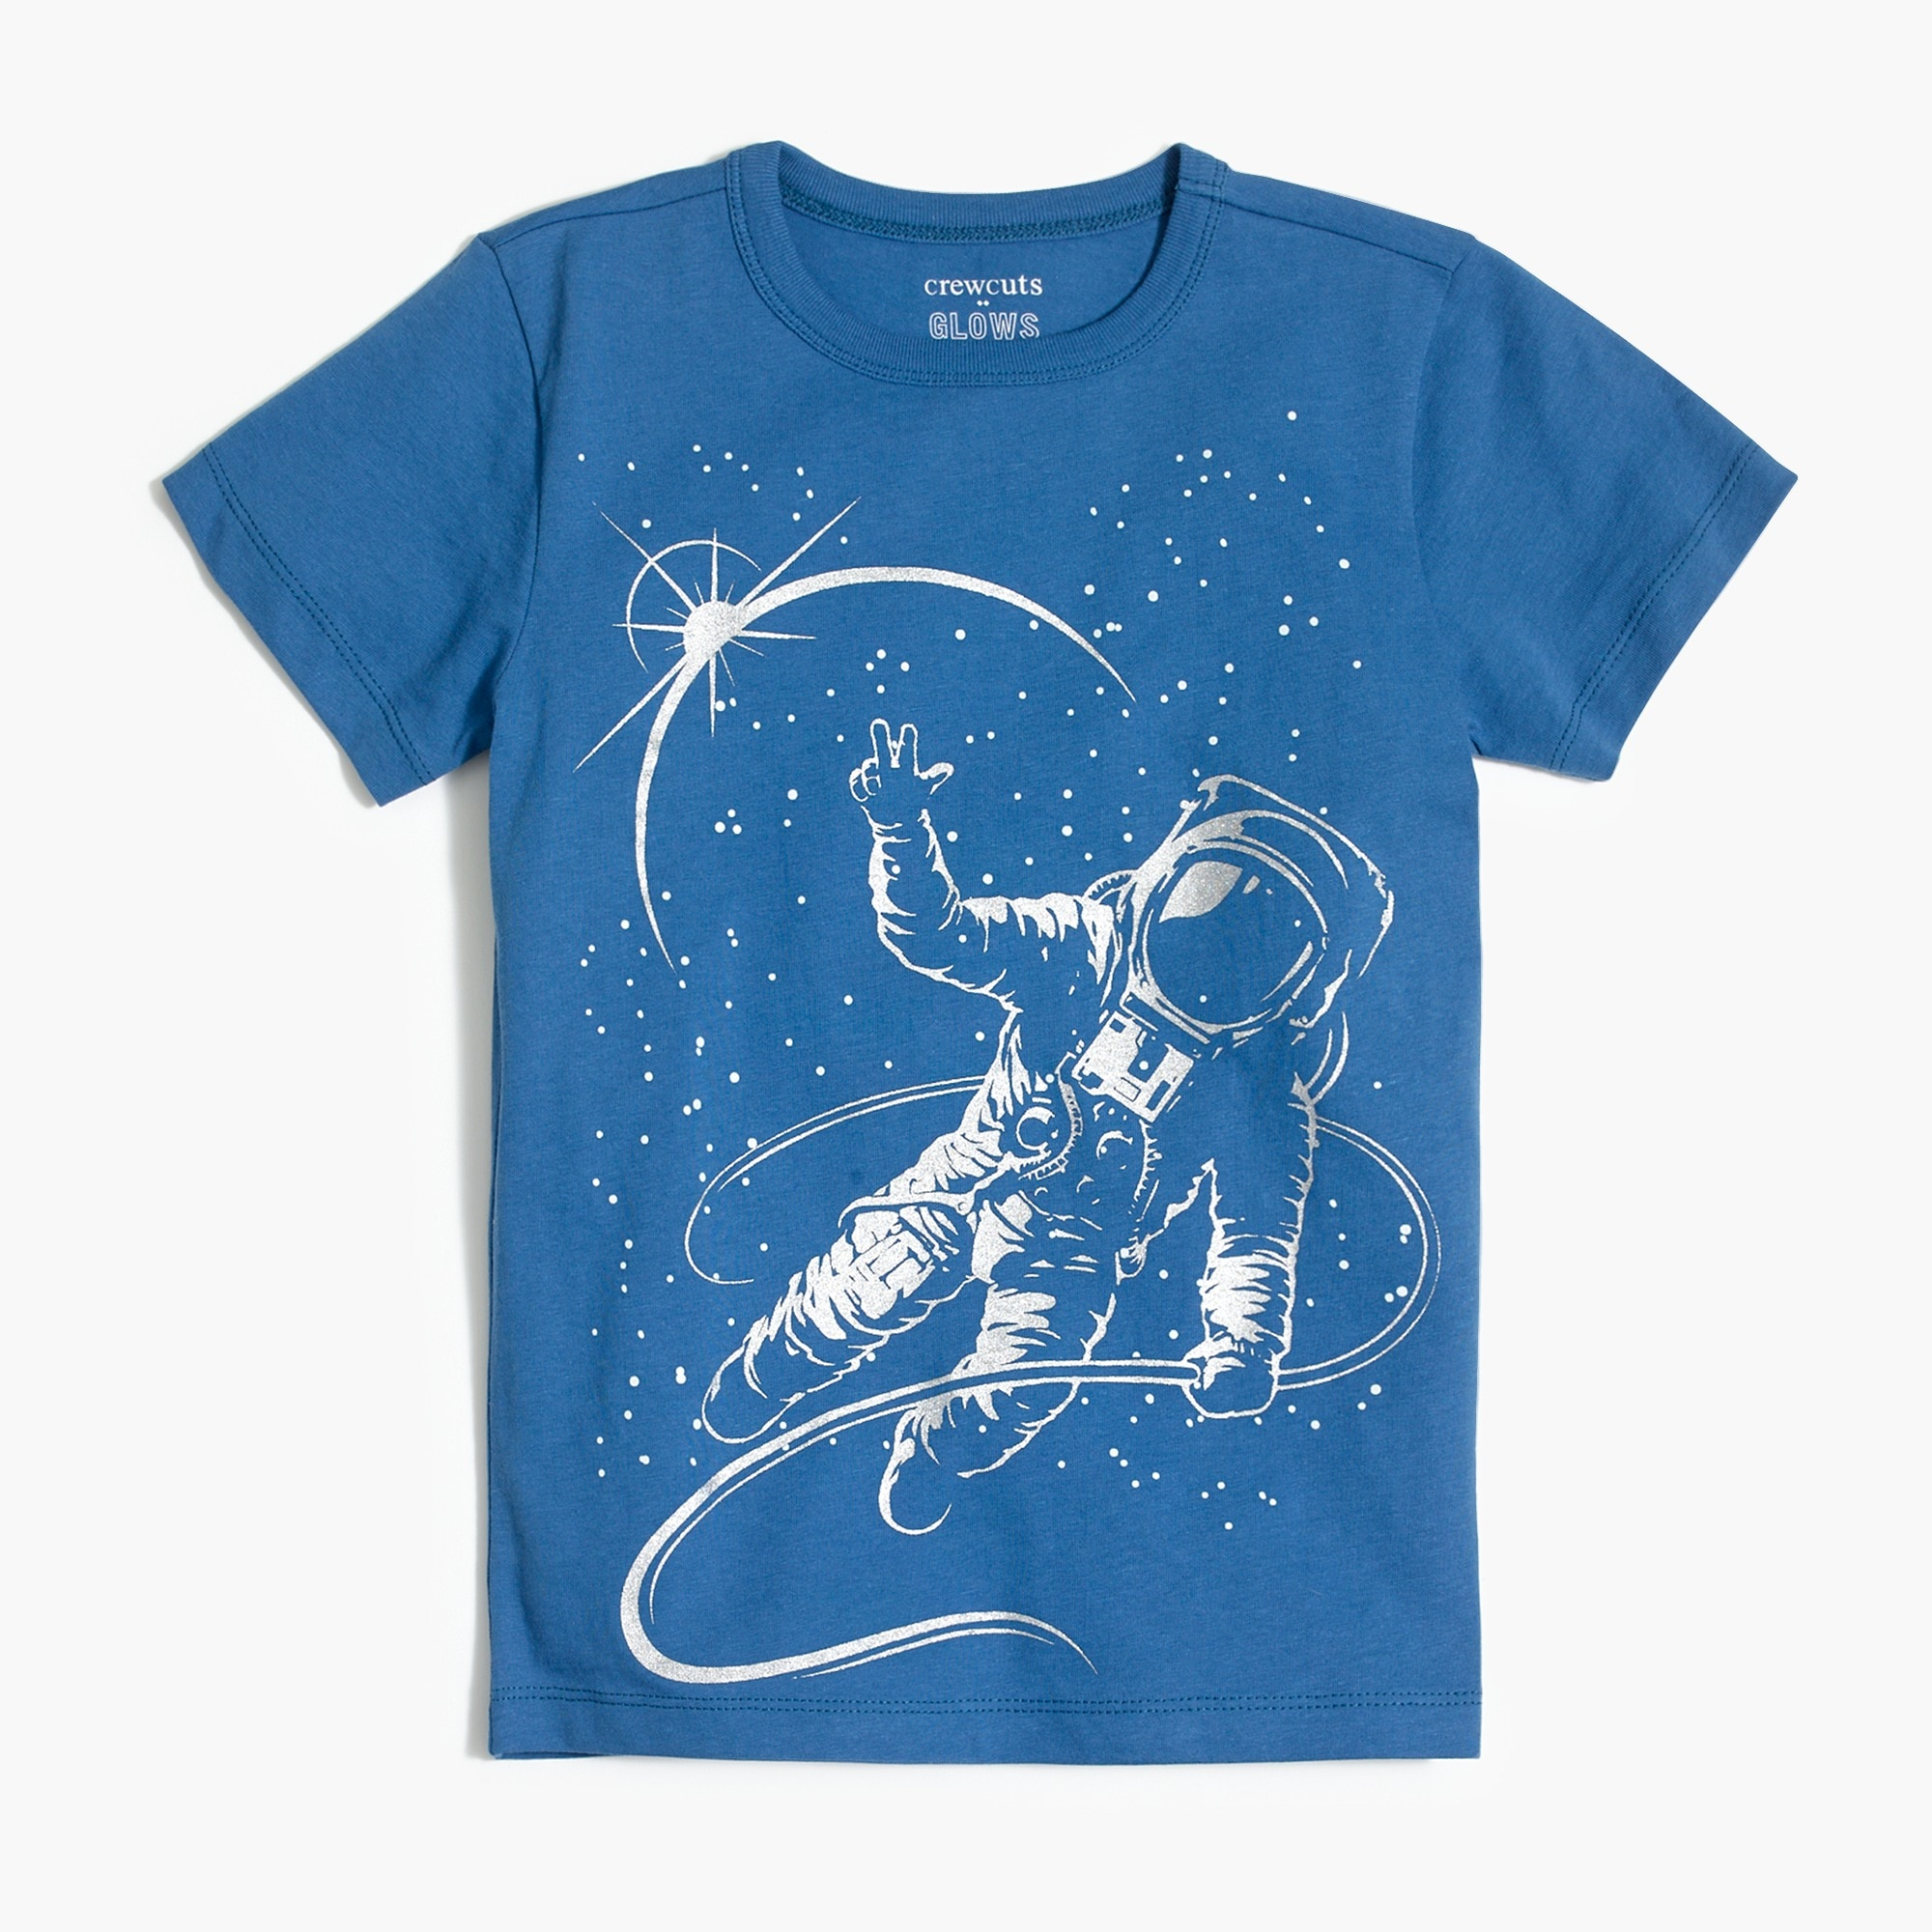 Boys' glow-in-the-dark astronaut graphic T-shirt